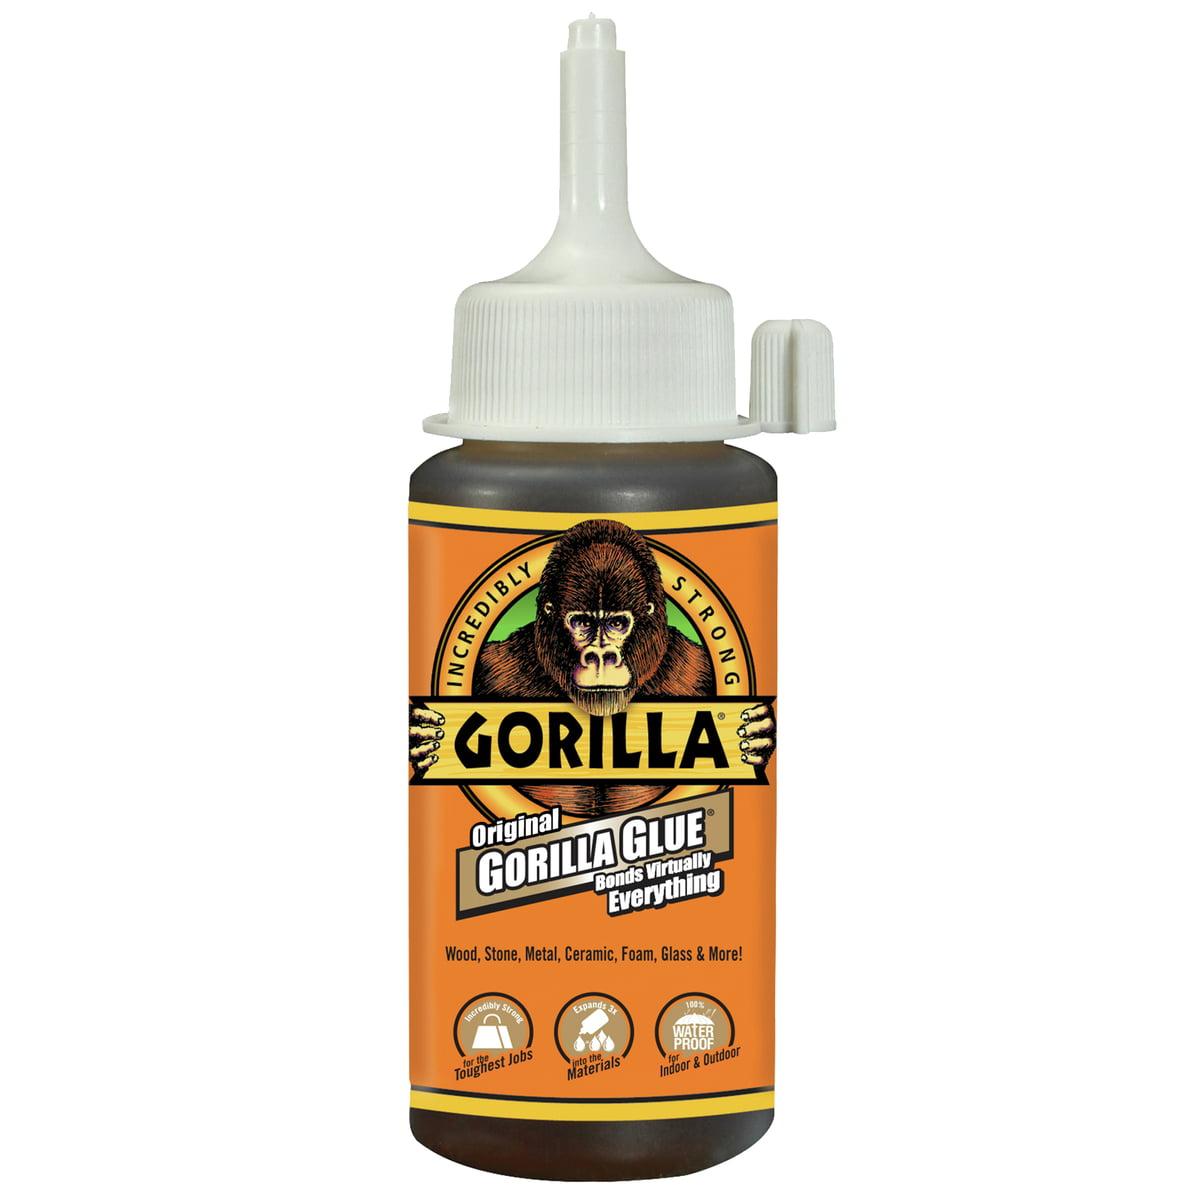 Gorilla Original Glue, 4 oz. by Generic